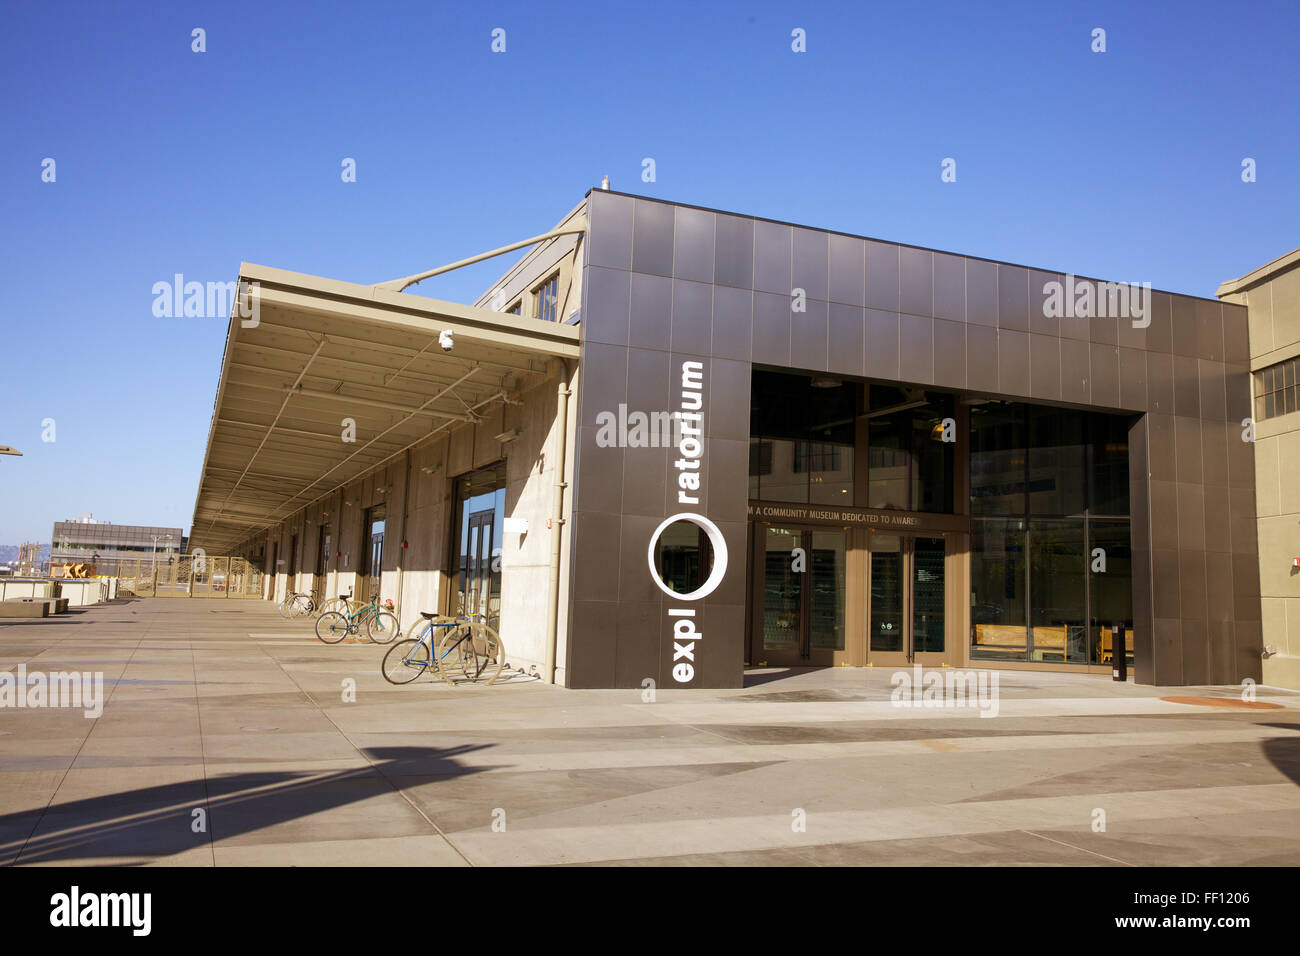 The entrance of the Exploratorium with clear blue skies in the background located on San Francisco's Embarcadero. - Stock Image